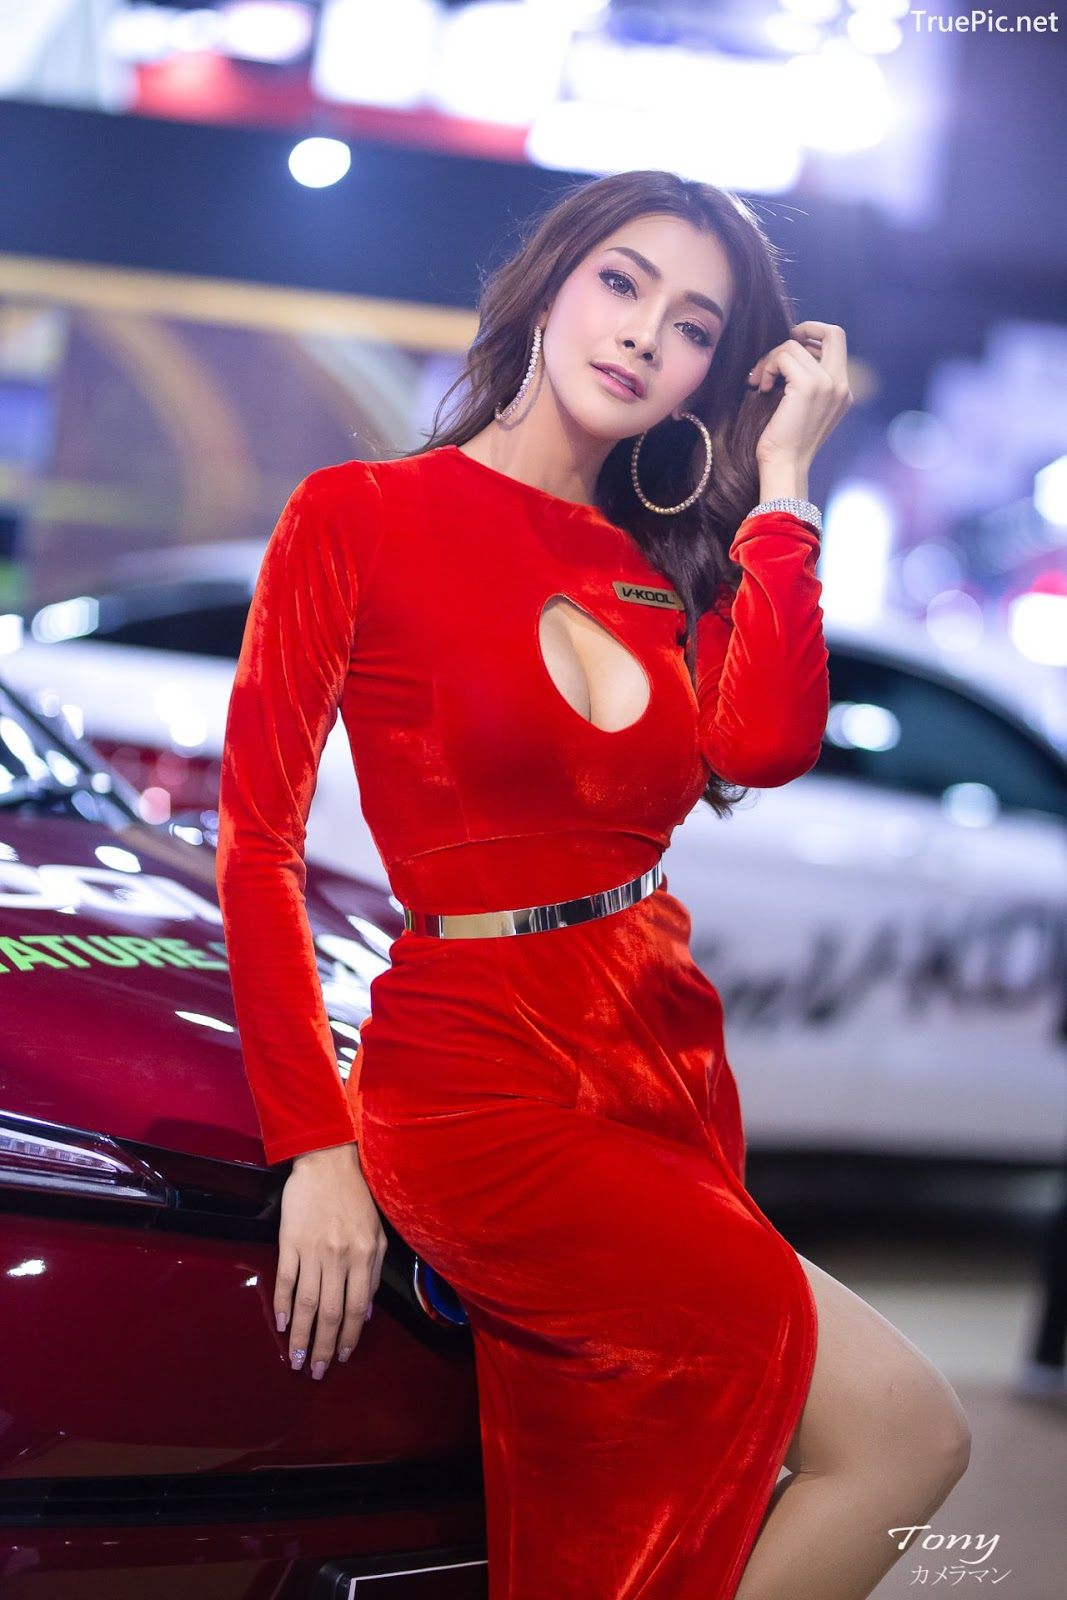 Image-Thailand-Hot-Model-Thai-Racing-Girl-At-Motor-Show-2019-TruePic.net- Picture-1